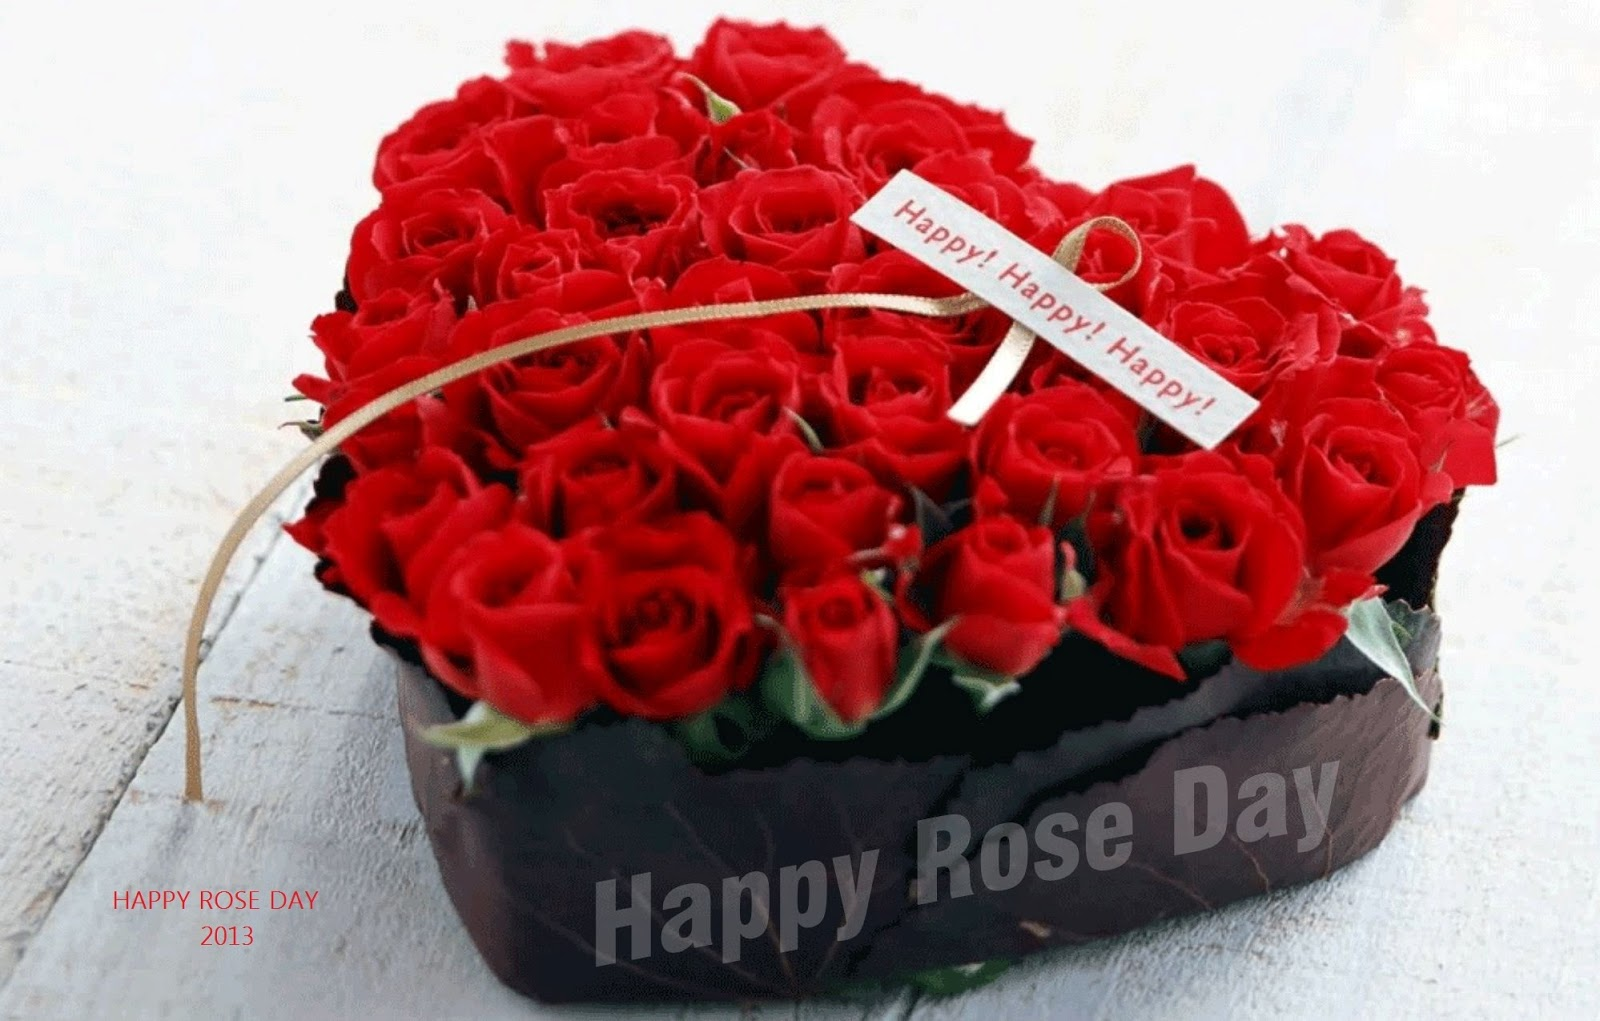 rose day images for friendship